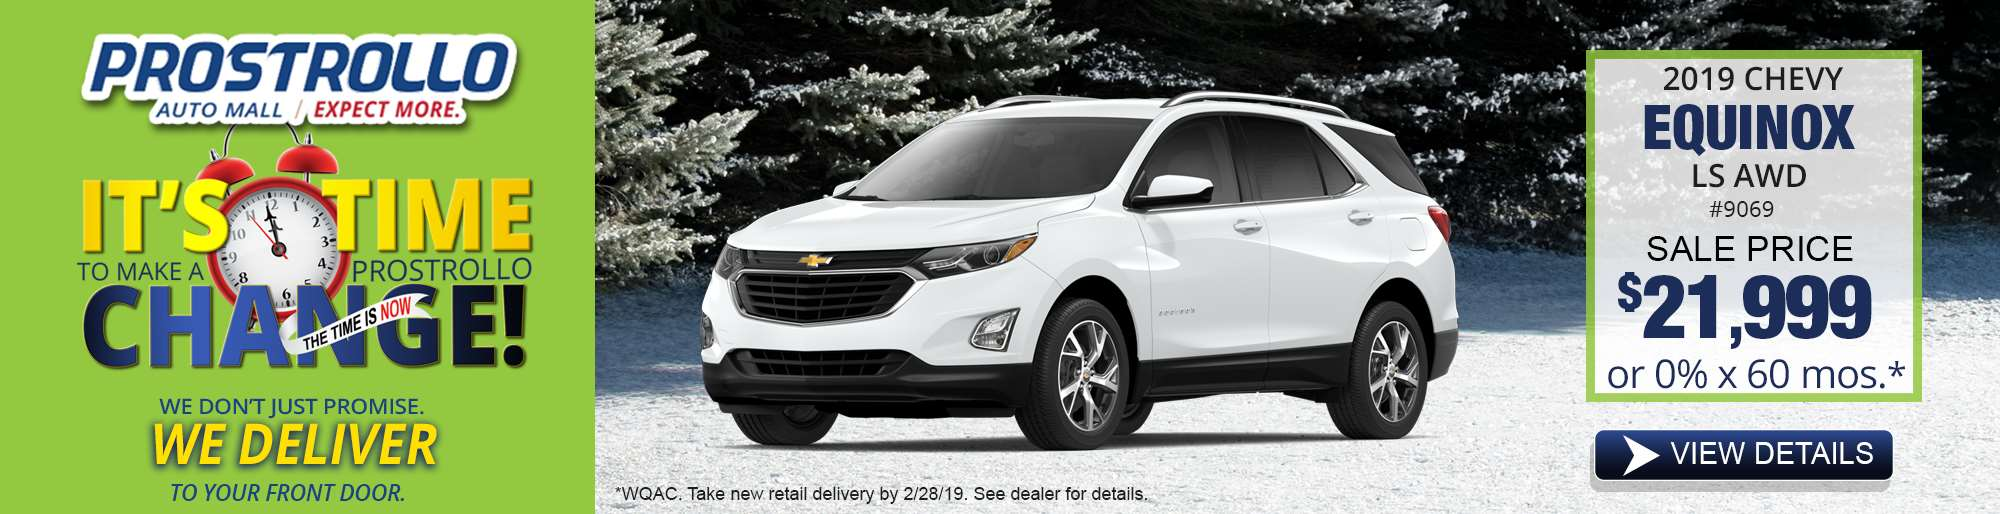 2. 2019 Chevy Equinox